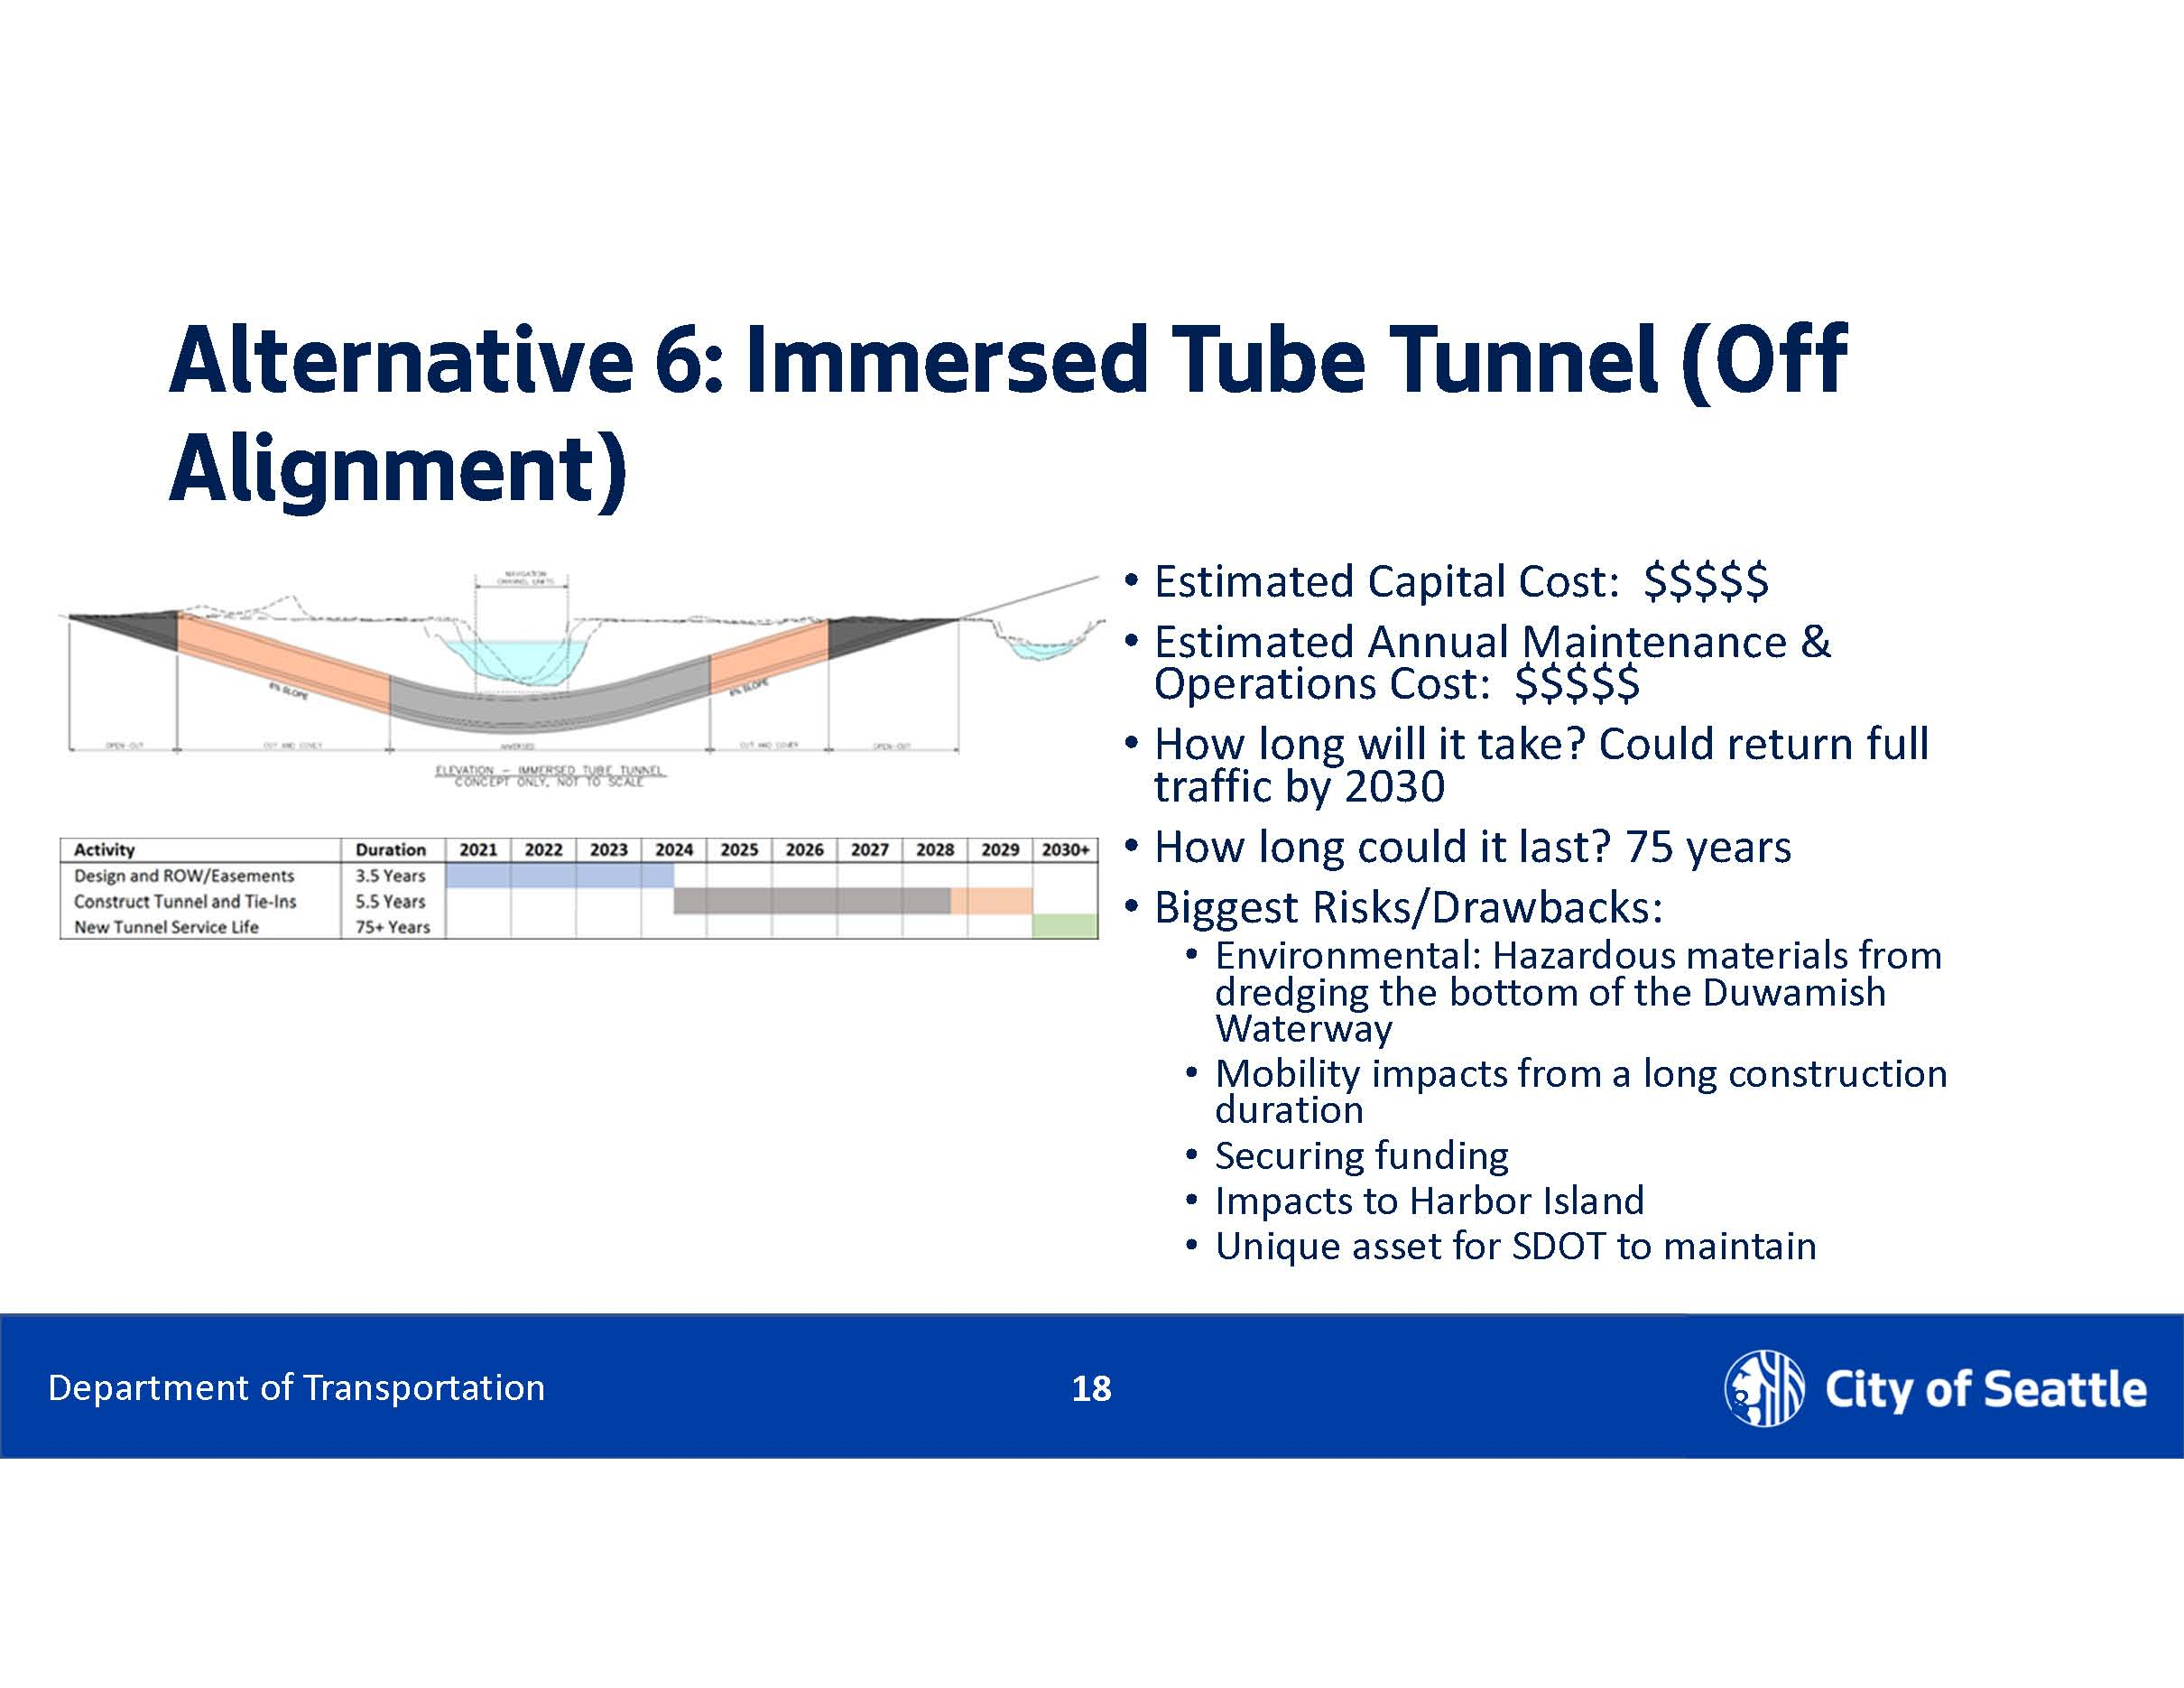 Immersed Tube Tunnel